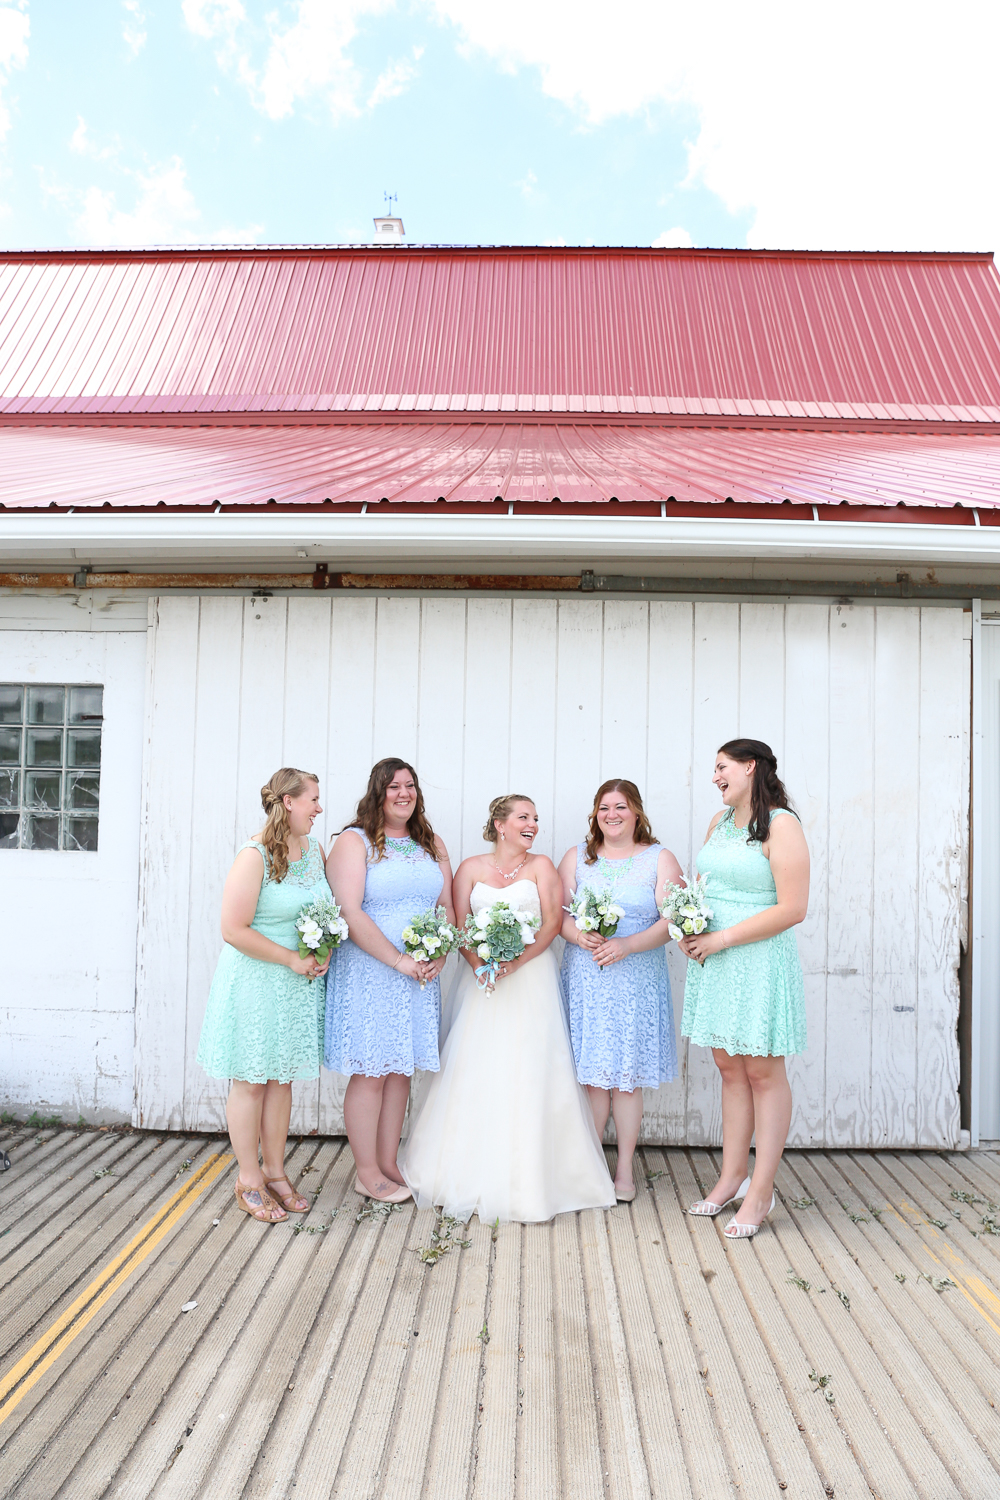 Barn Wedding in Wisconsin at Simply Country Barn in Freedom - Whit Meza Photography